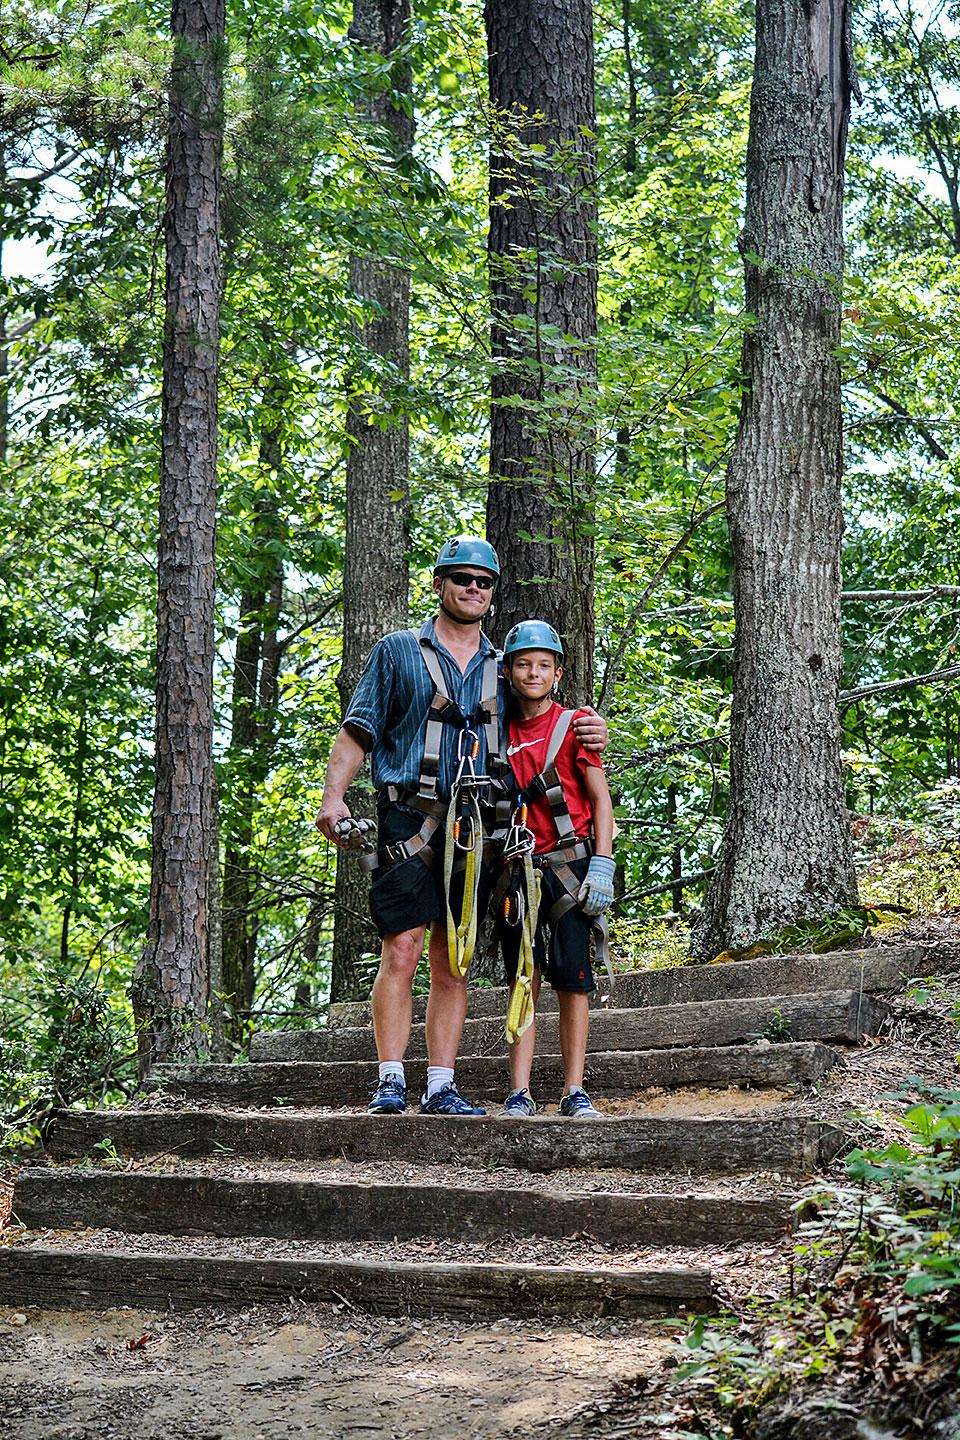 march weather in sevierville tn with Five Must Do Outings On Your Fall Trip To The Smokies on 400 together with Five Must Do Outings On Your Fall Trip To The Smokies also Pigeon Forge Cabins On Fire as well Agadir March Weather as well Uk Northern Ireland 17361059.